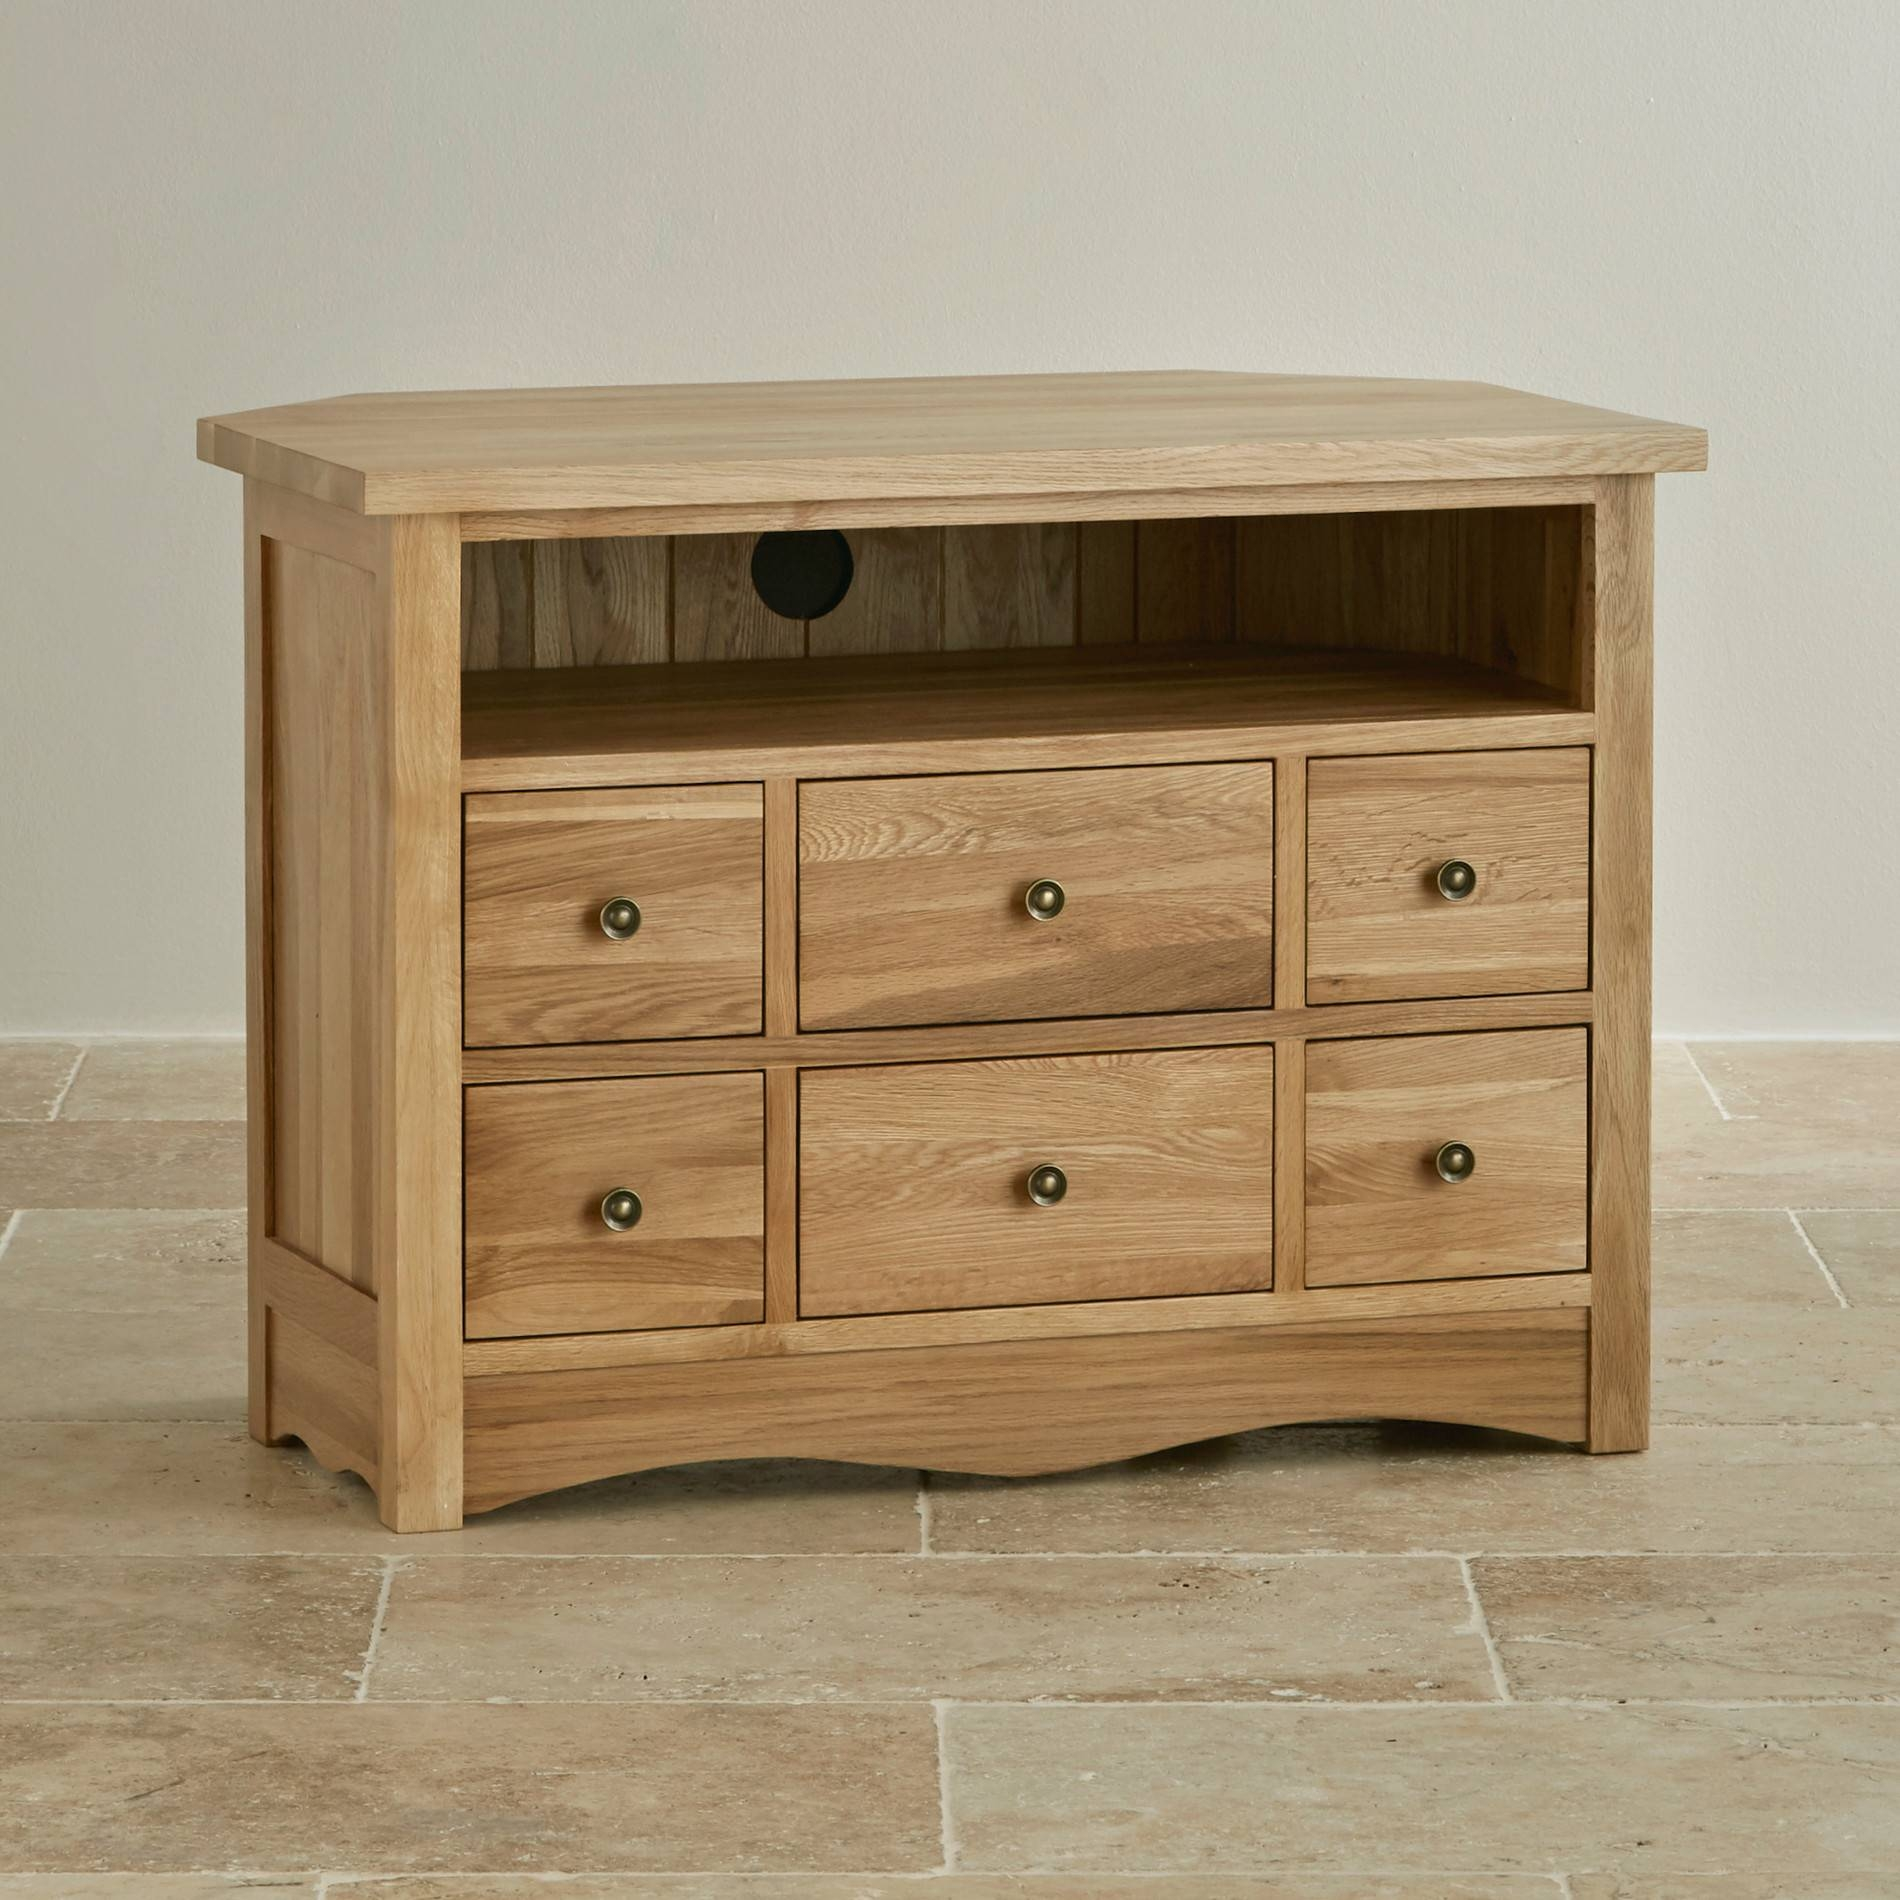 Cairo Corner Tv Cabinet In Natural Solid Oak | Oak Furniture Land within Corner Wooden Tv Cabinets (Image 2 of 15)